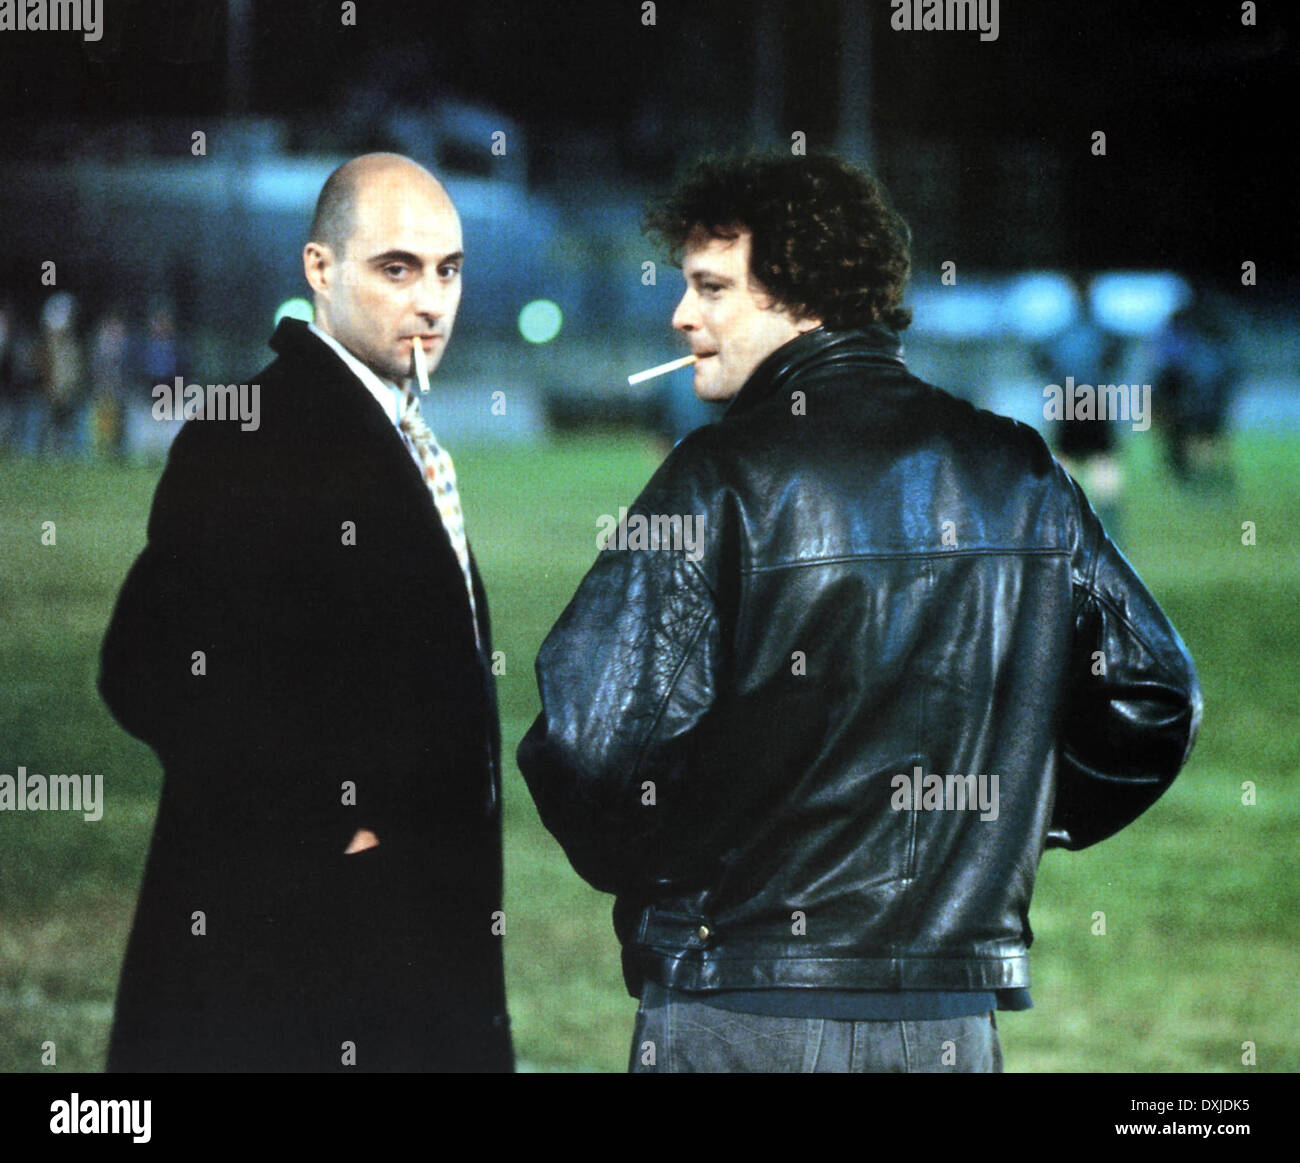 FEVER PITCH - Stock Image